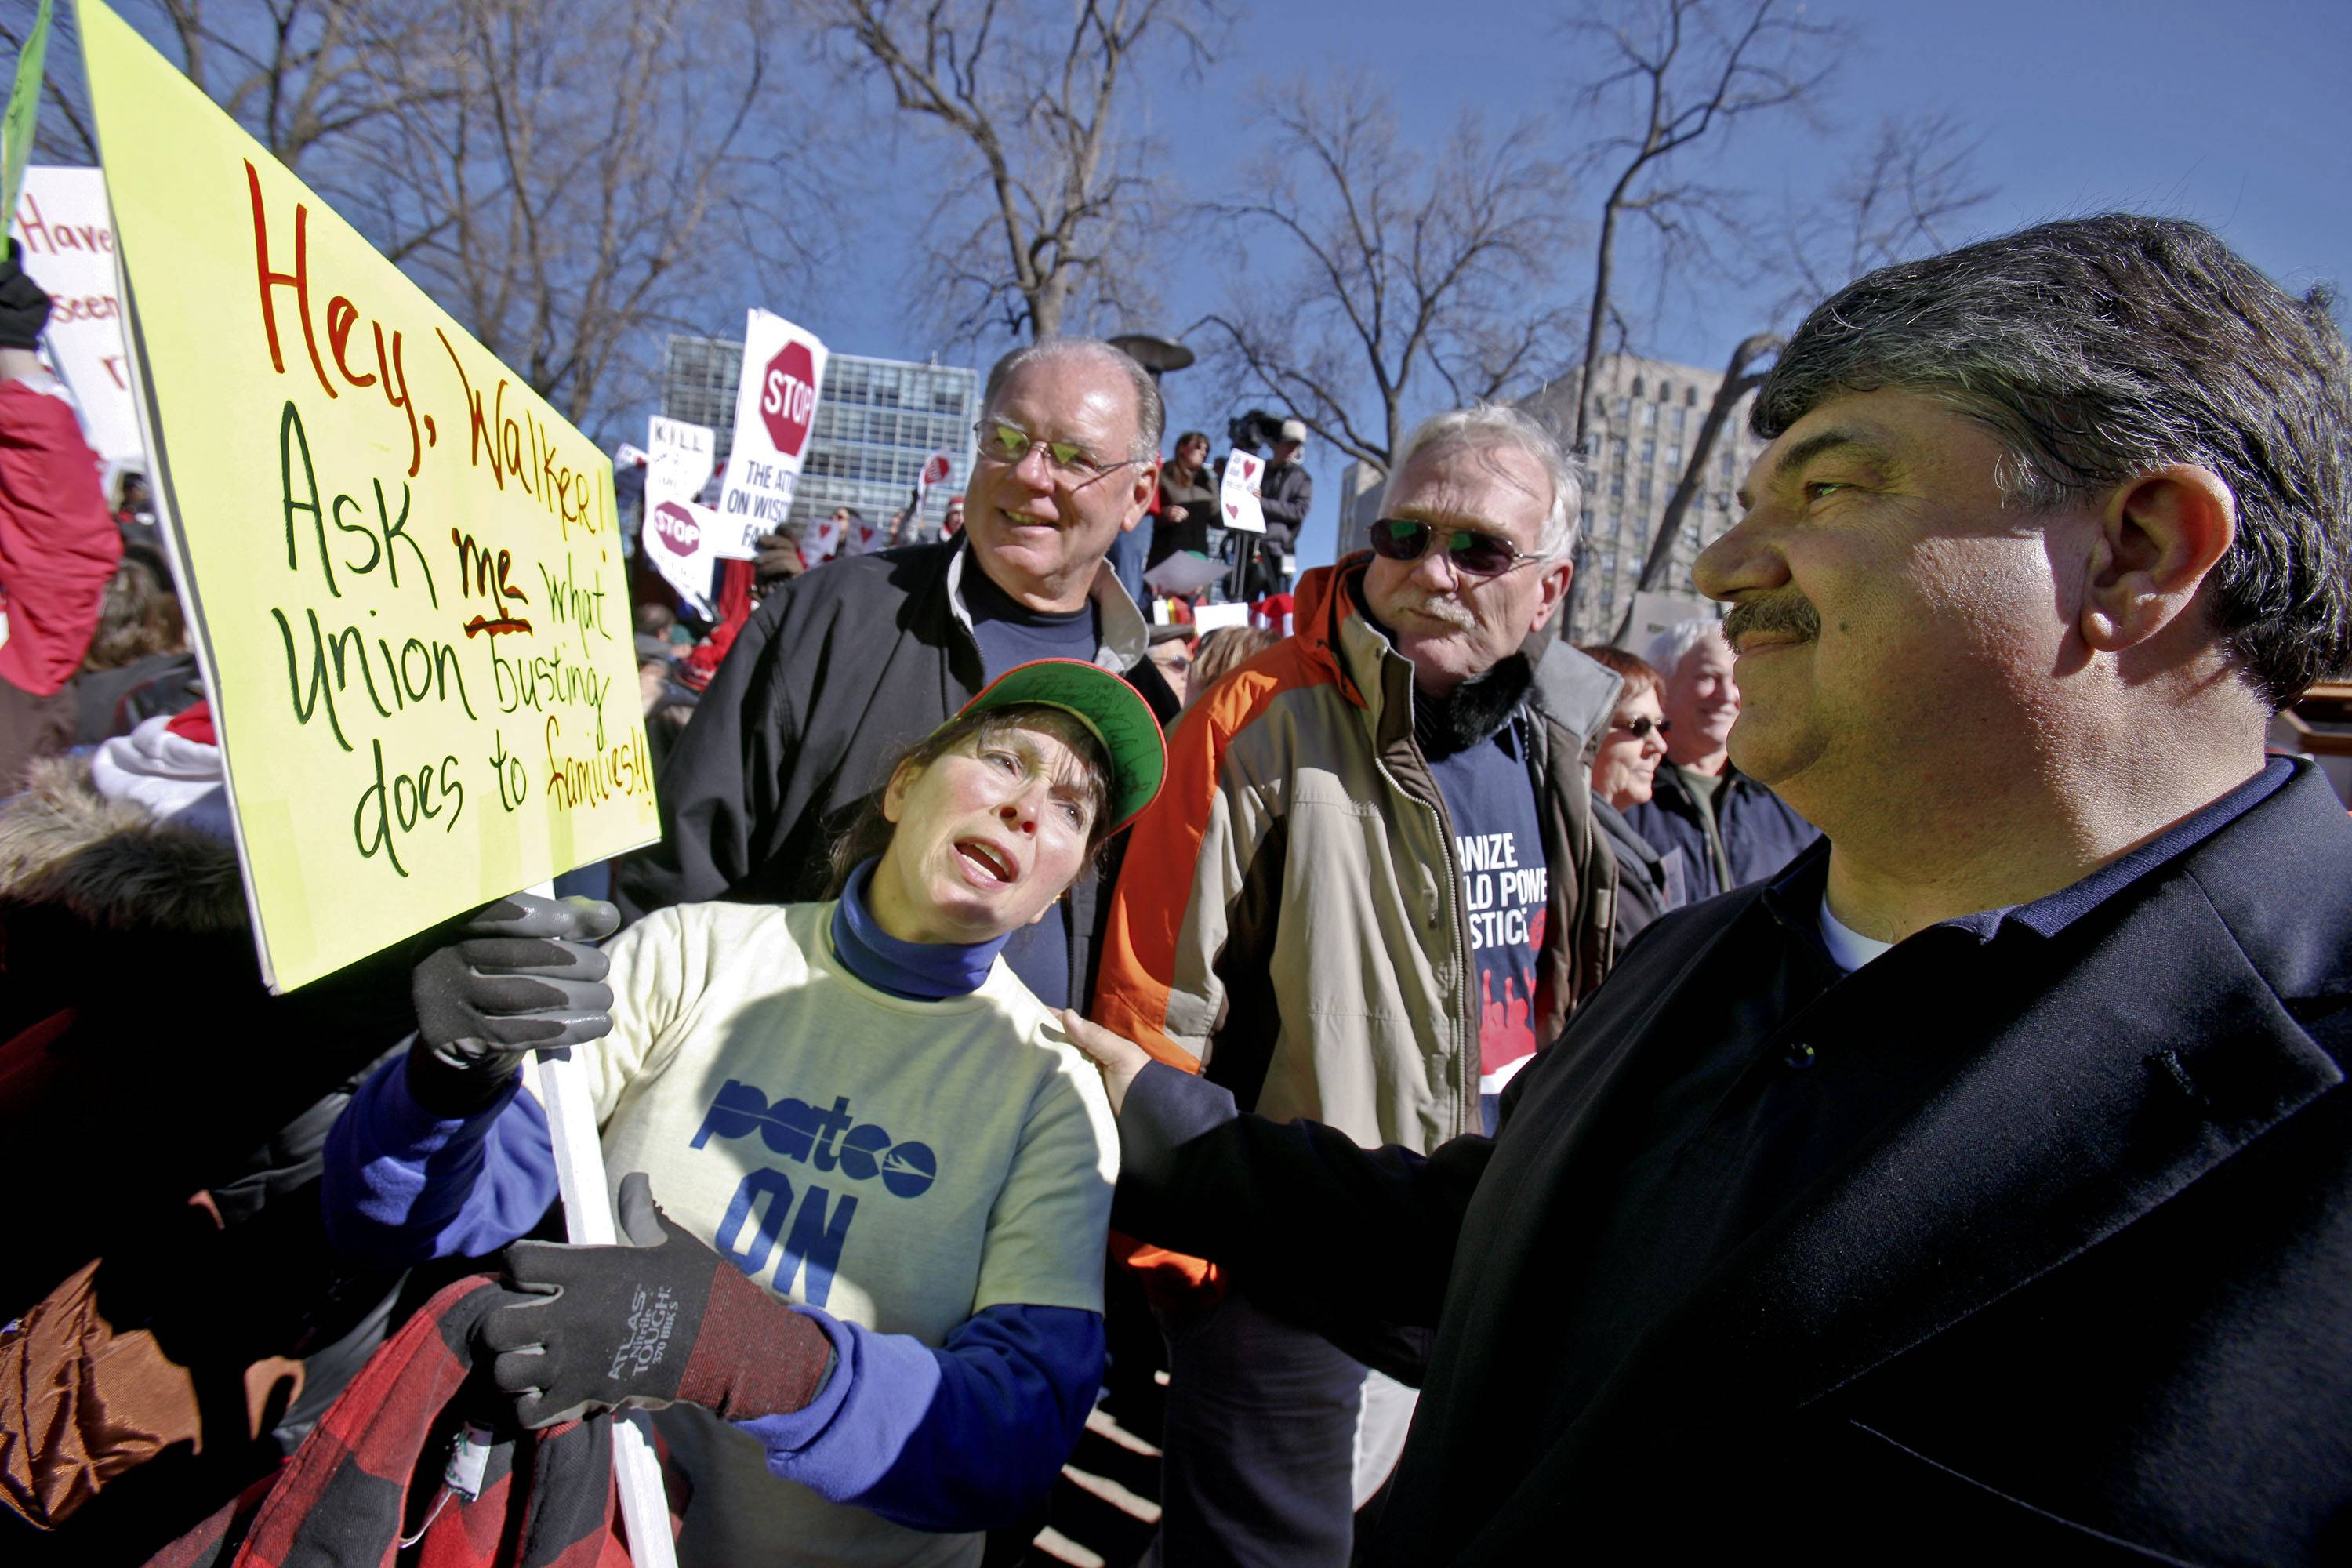 "In this Feb. 18, 2011, file photo AFL-CIO President Richard Trumka, right, talks with retired postal worker Judy Bukowski of Madson, Wis., outside of the State Capitol in Madison, where union members, students, and others protested against the governor's bill to eliminate collective bargaining rights for many state workers. the early days of the Obama administration, organized labor had grand visions of pushing through a sweeping agenda that would help boost sagging membership and help revive union strength, but frustration with President Barack Obama reached new heights this summer as Trumka accused him of working with tea party Republicans on deficit reduction instead of ""stepping up to the plate"" on jobs."